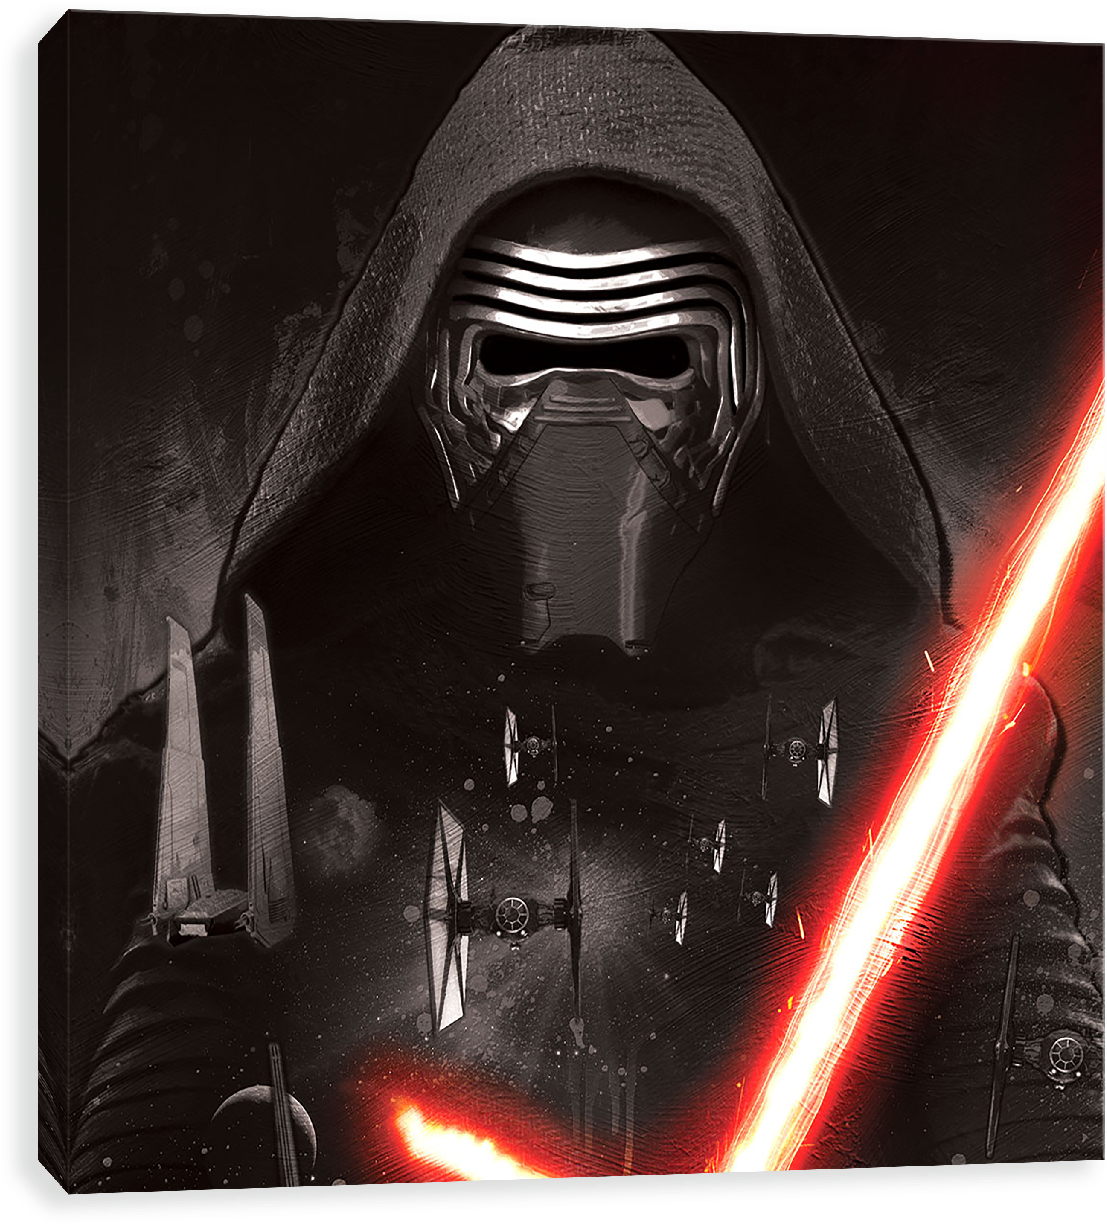 Download Kylo Ren Rising Star Wars The Force Awakens Wallpaper For Android Png Image With No Background Pngkey Com